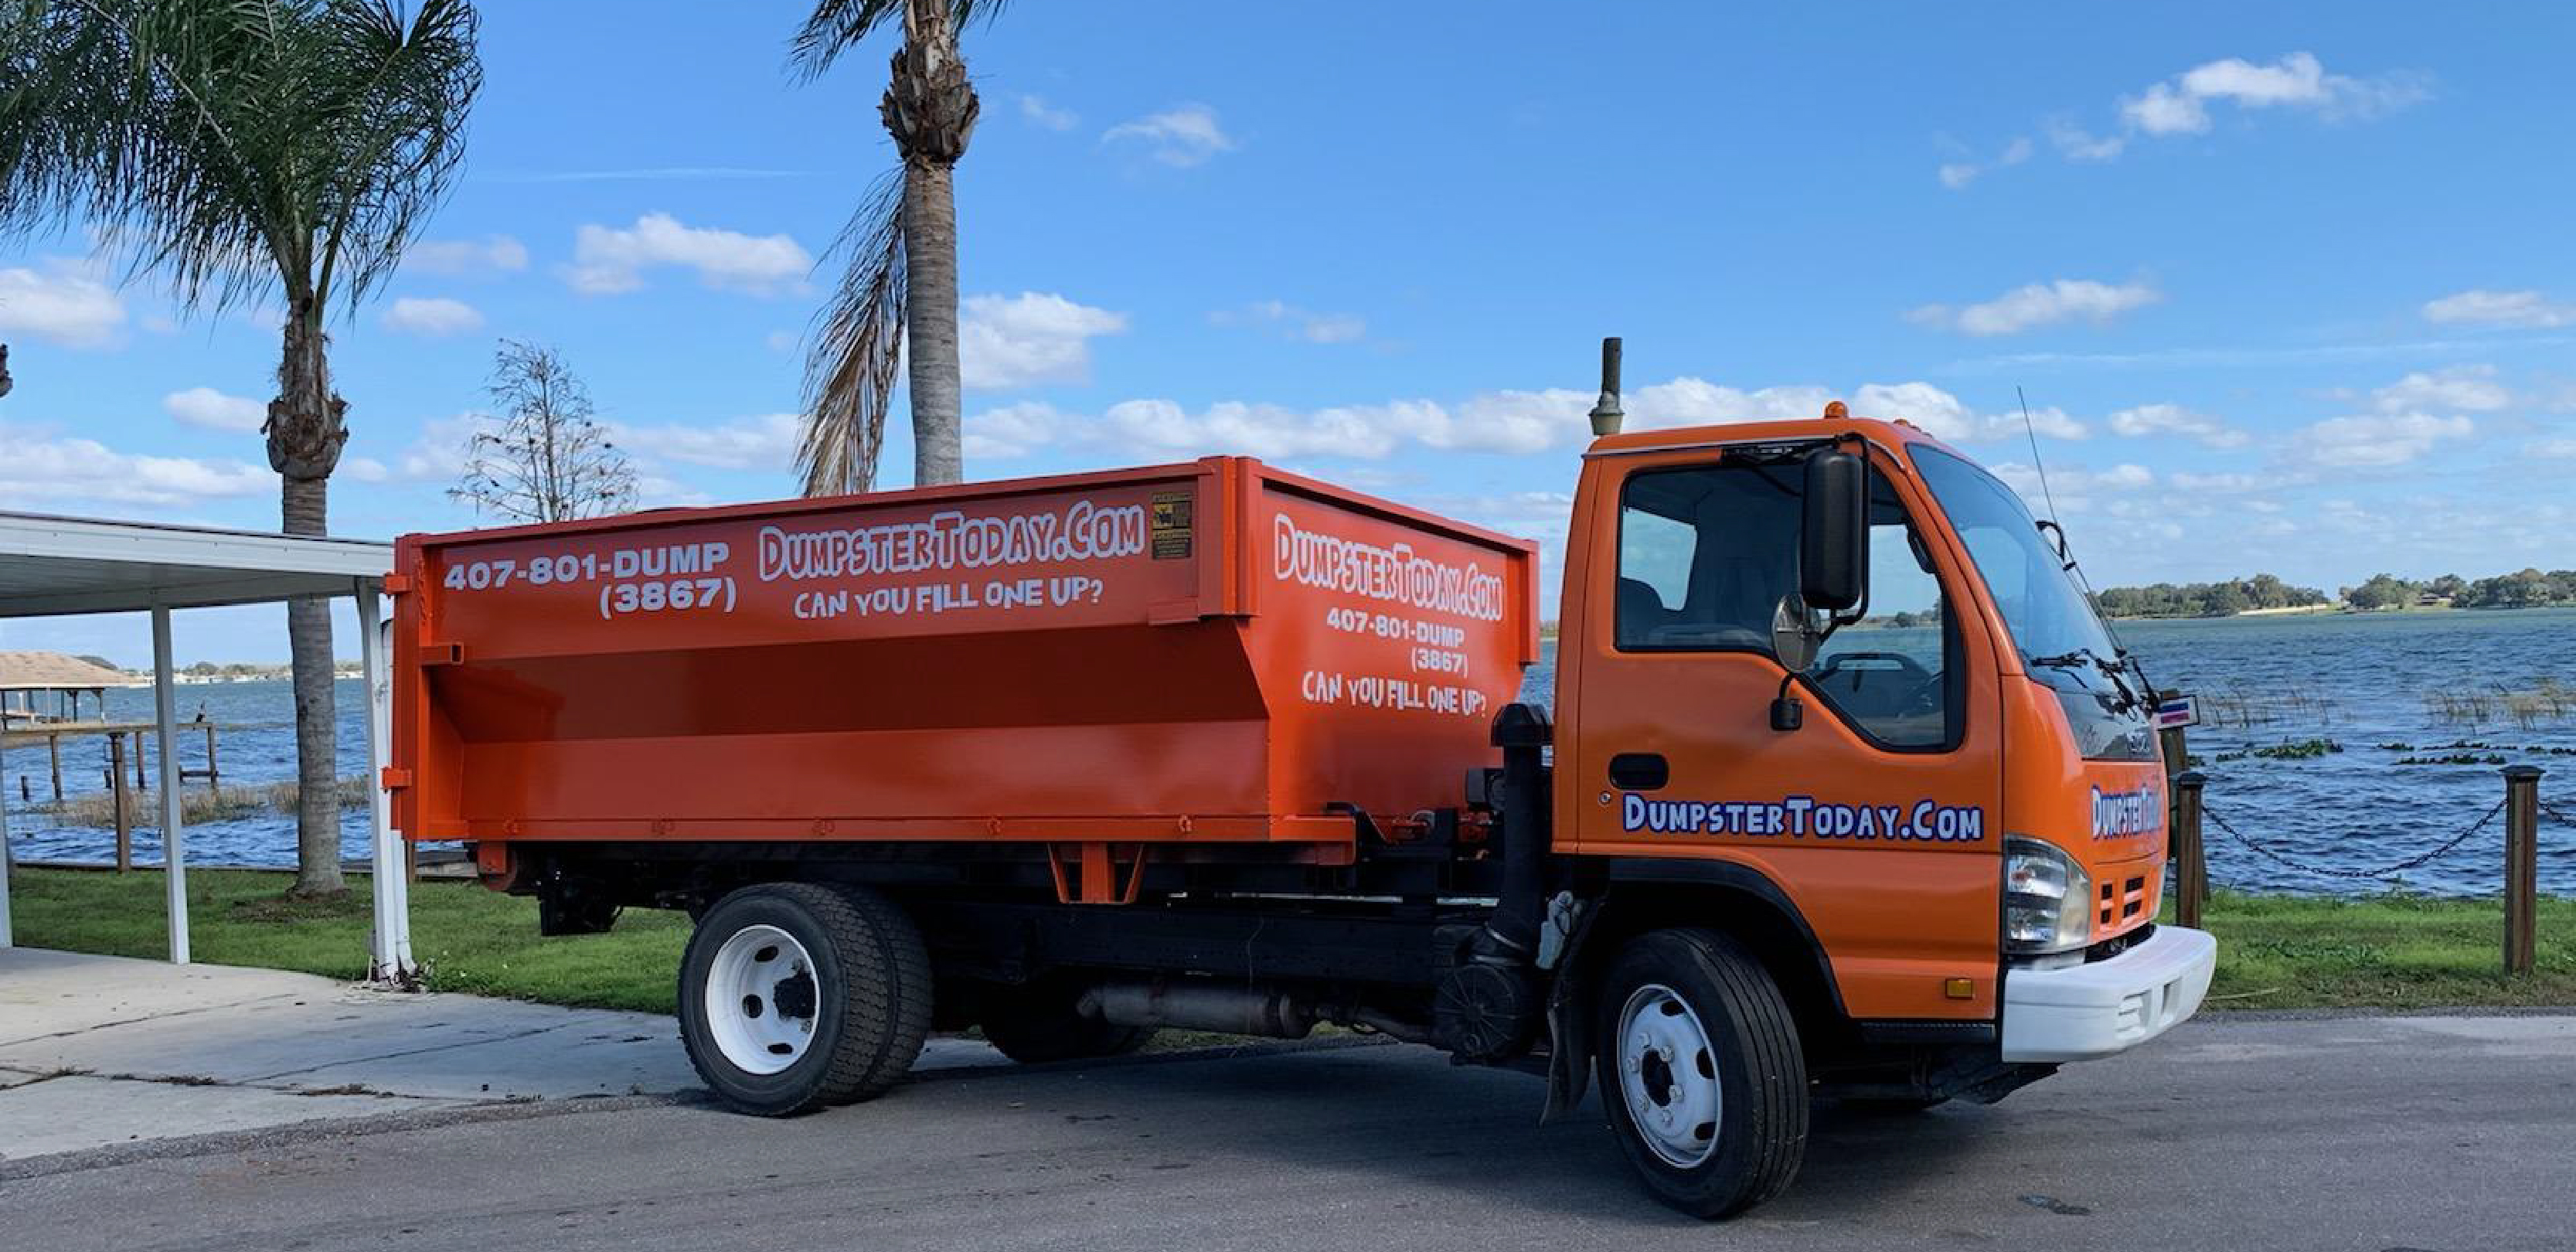 DUMPSTER TODAY DELIVERY IN ORLANDO-01